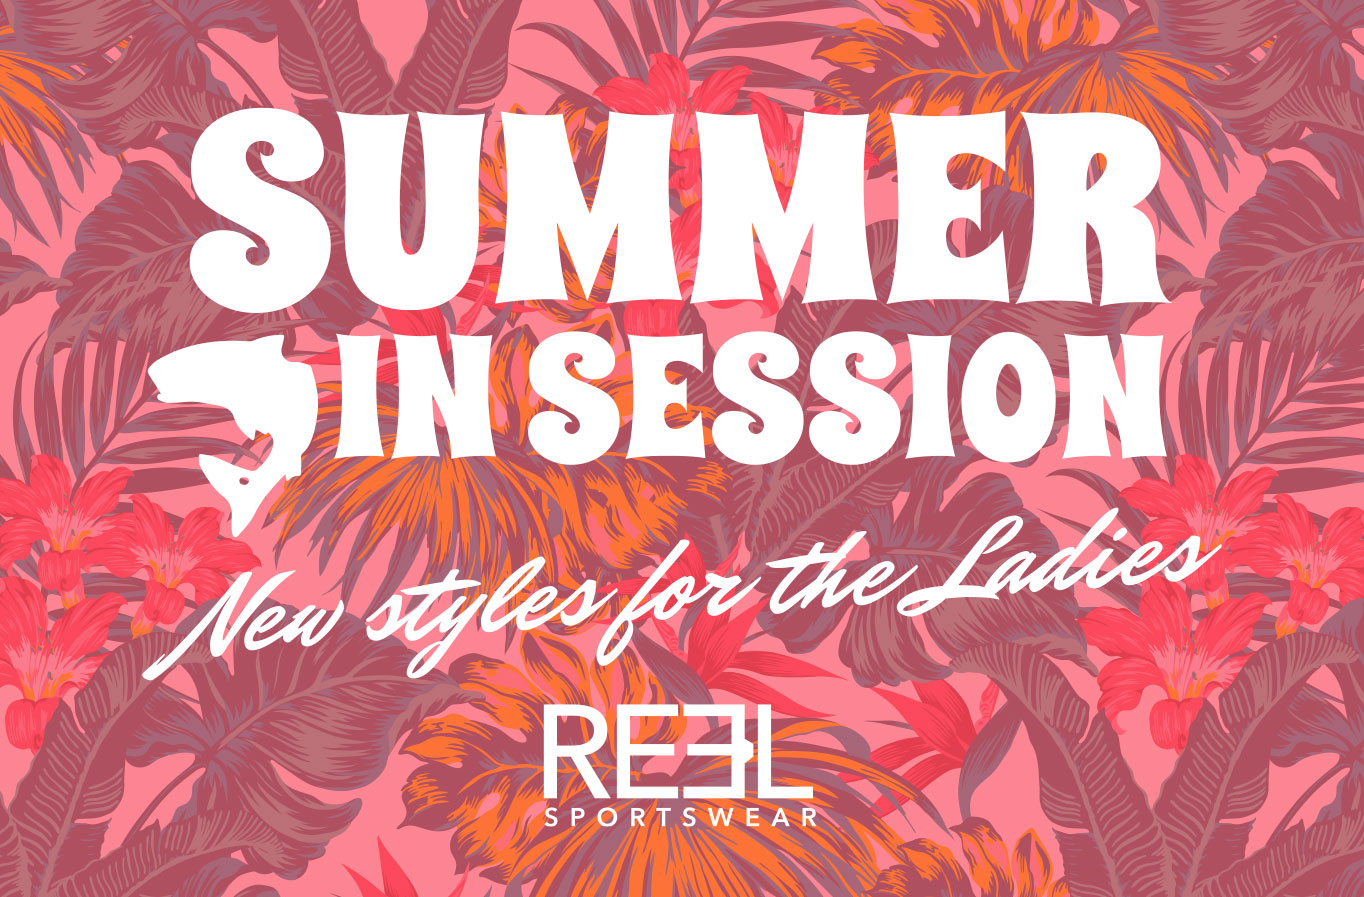 Summer in session by Reel Sportswear